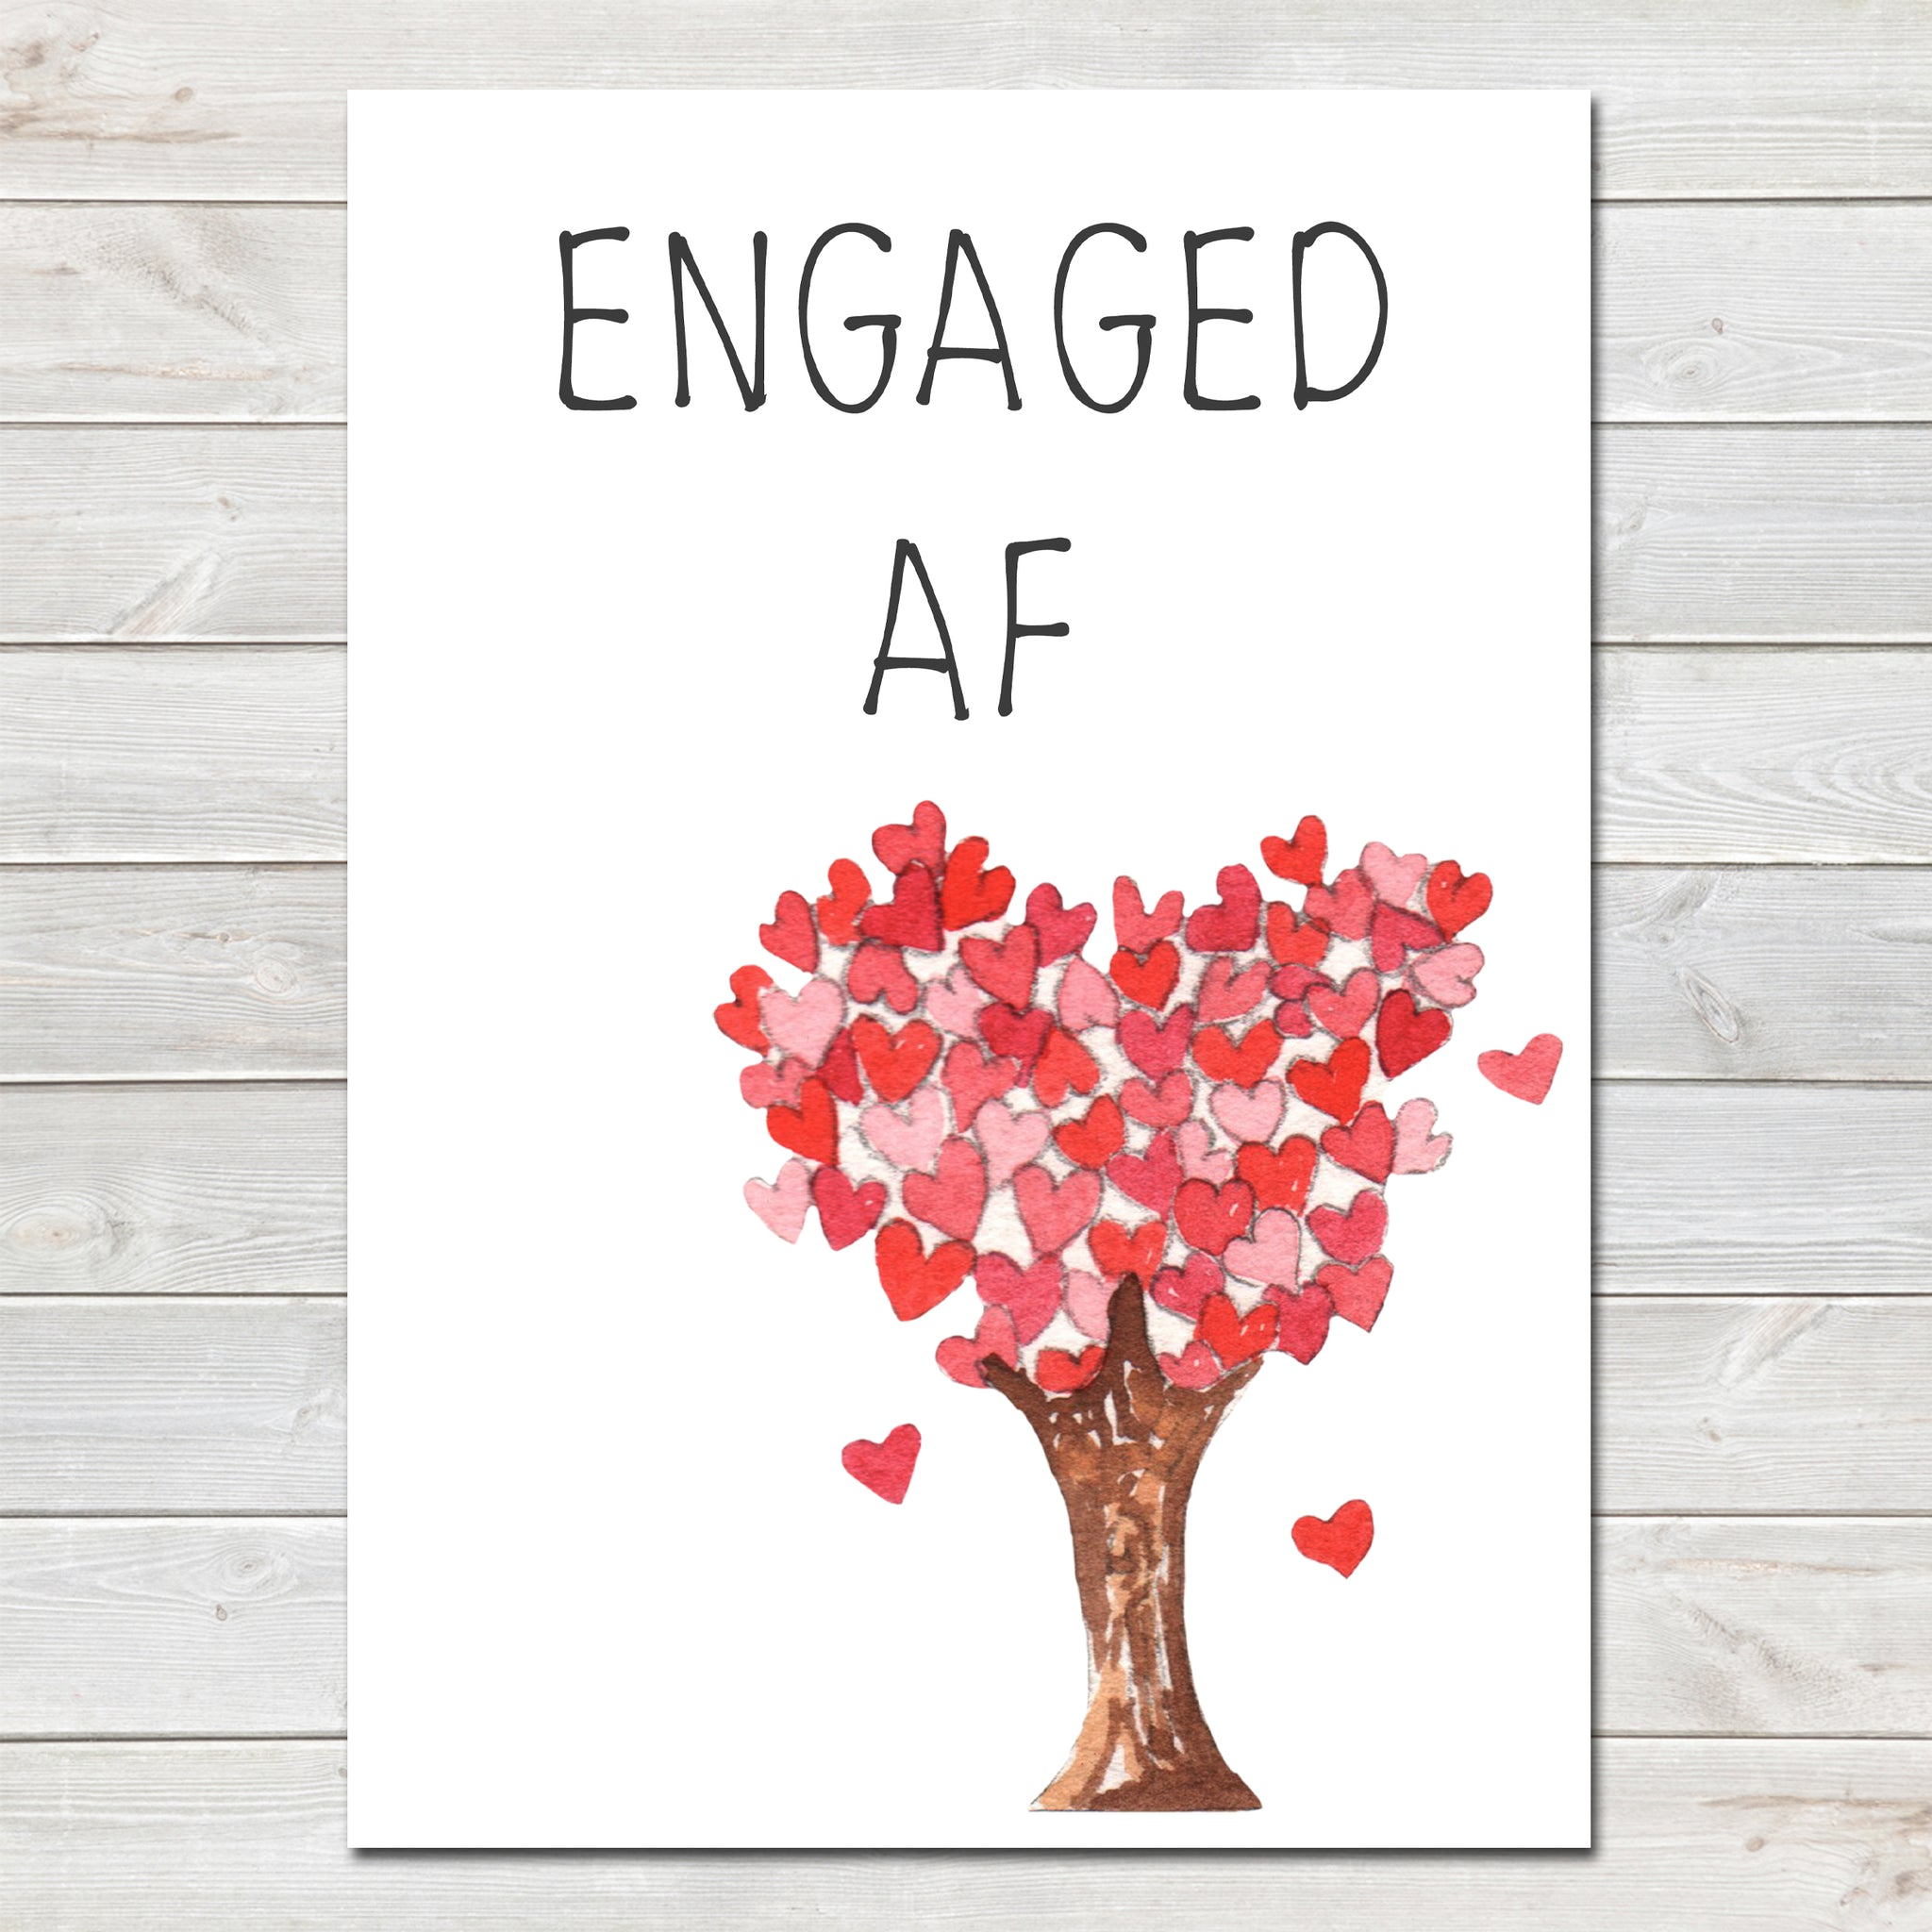 Engagement Party Engaged AF (As F***) Tree of Hearts Poster / Photo Prop / Sign